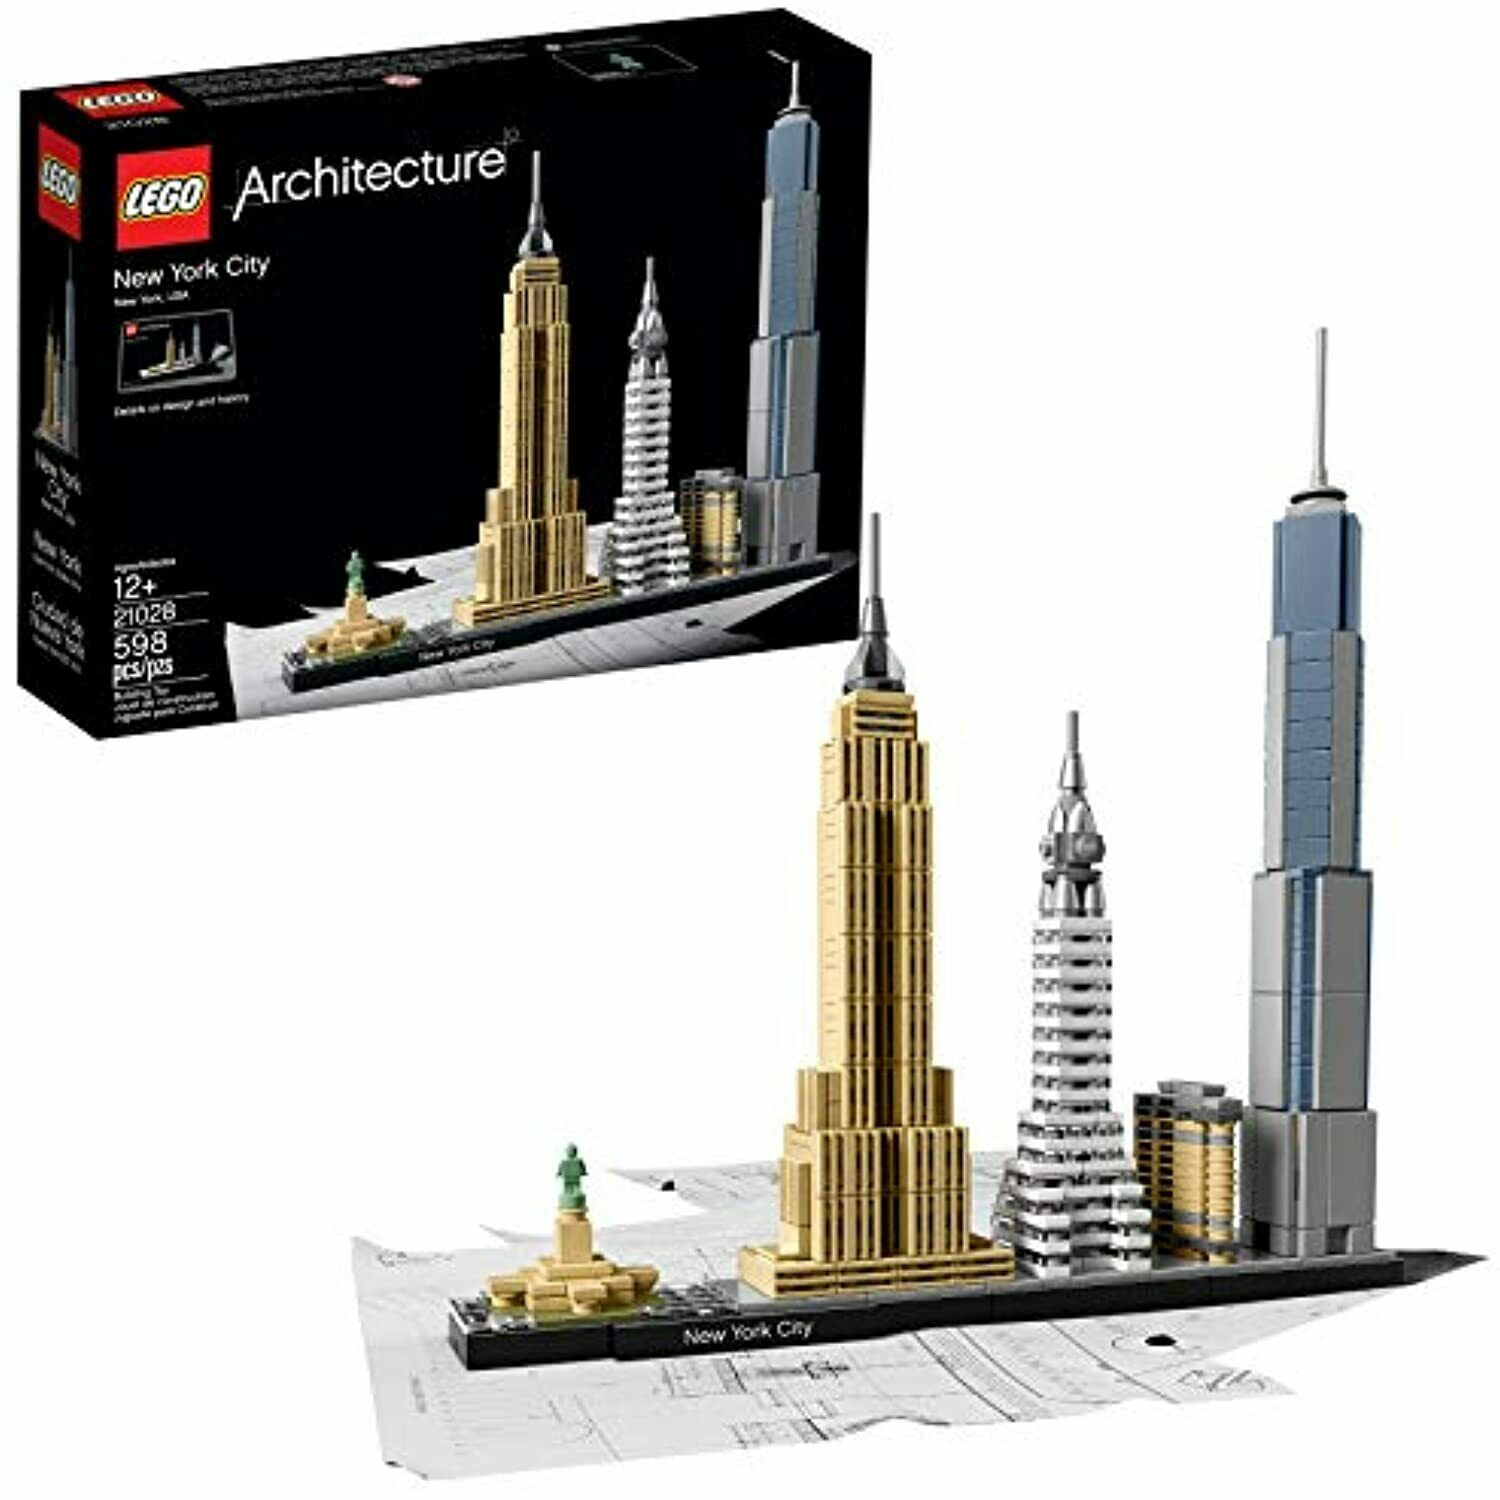 Lego Architecture London 21034 Skyline Collection Gift for sale online